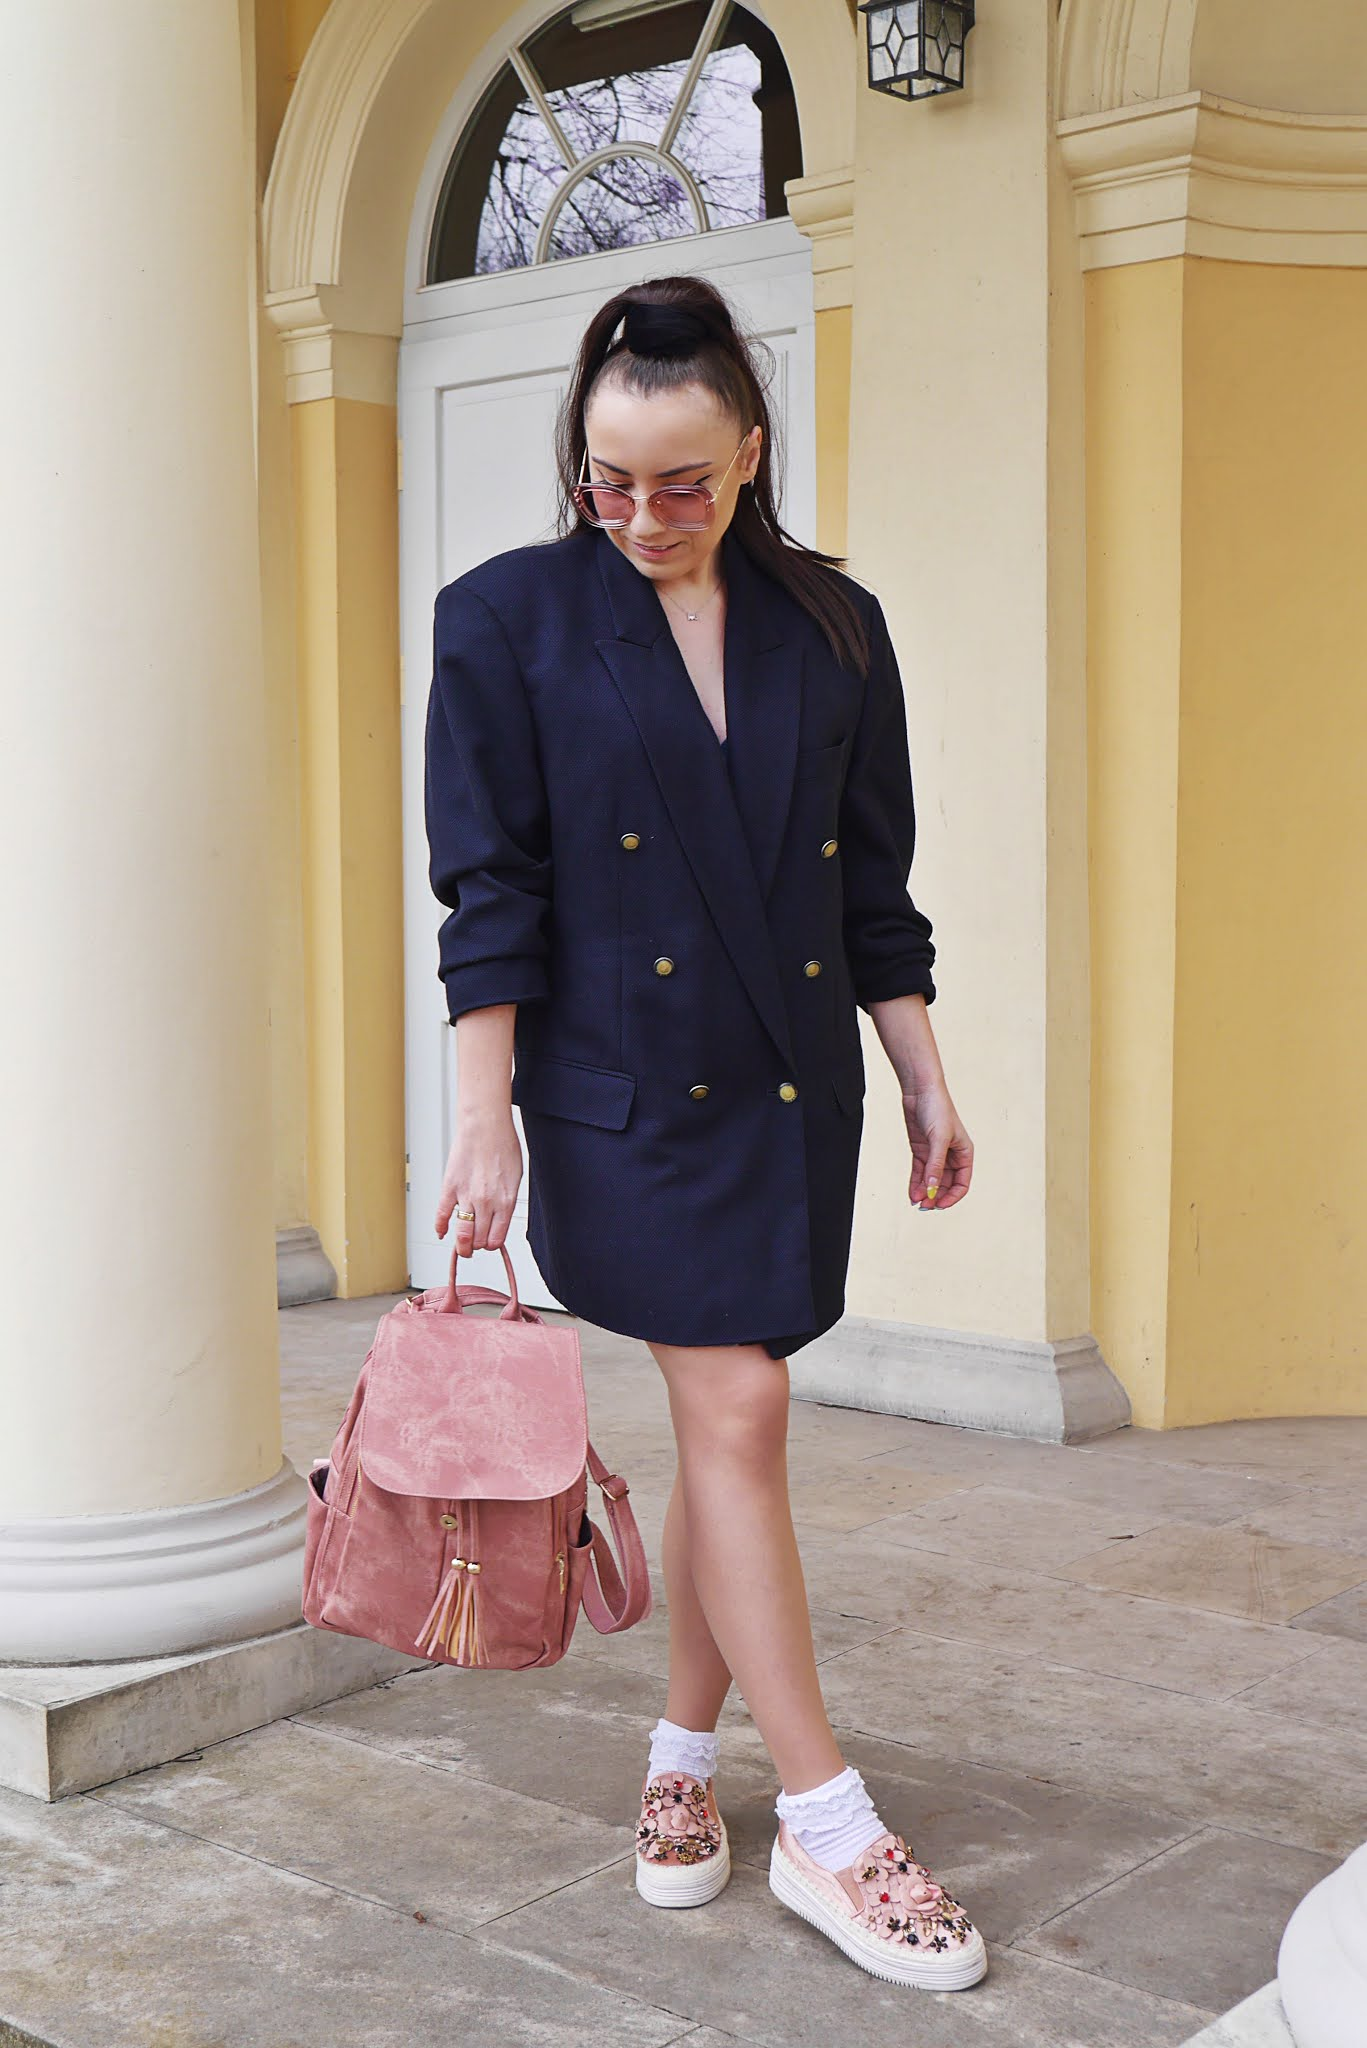 fashion blogger look outfit ootd oversize blazer armani giorgio pink sunglasses spring look